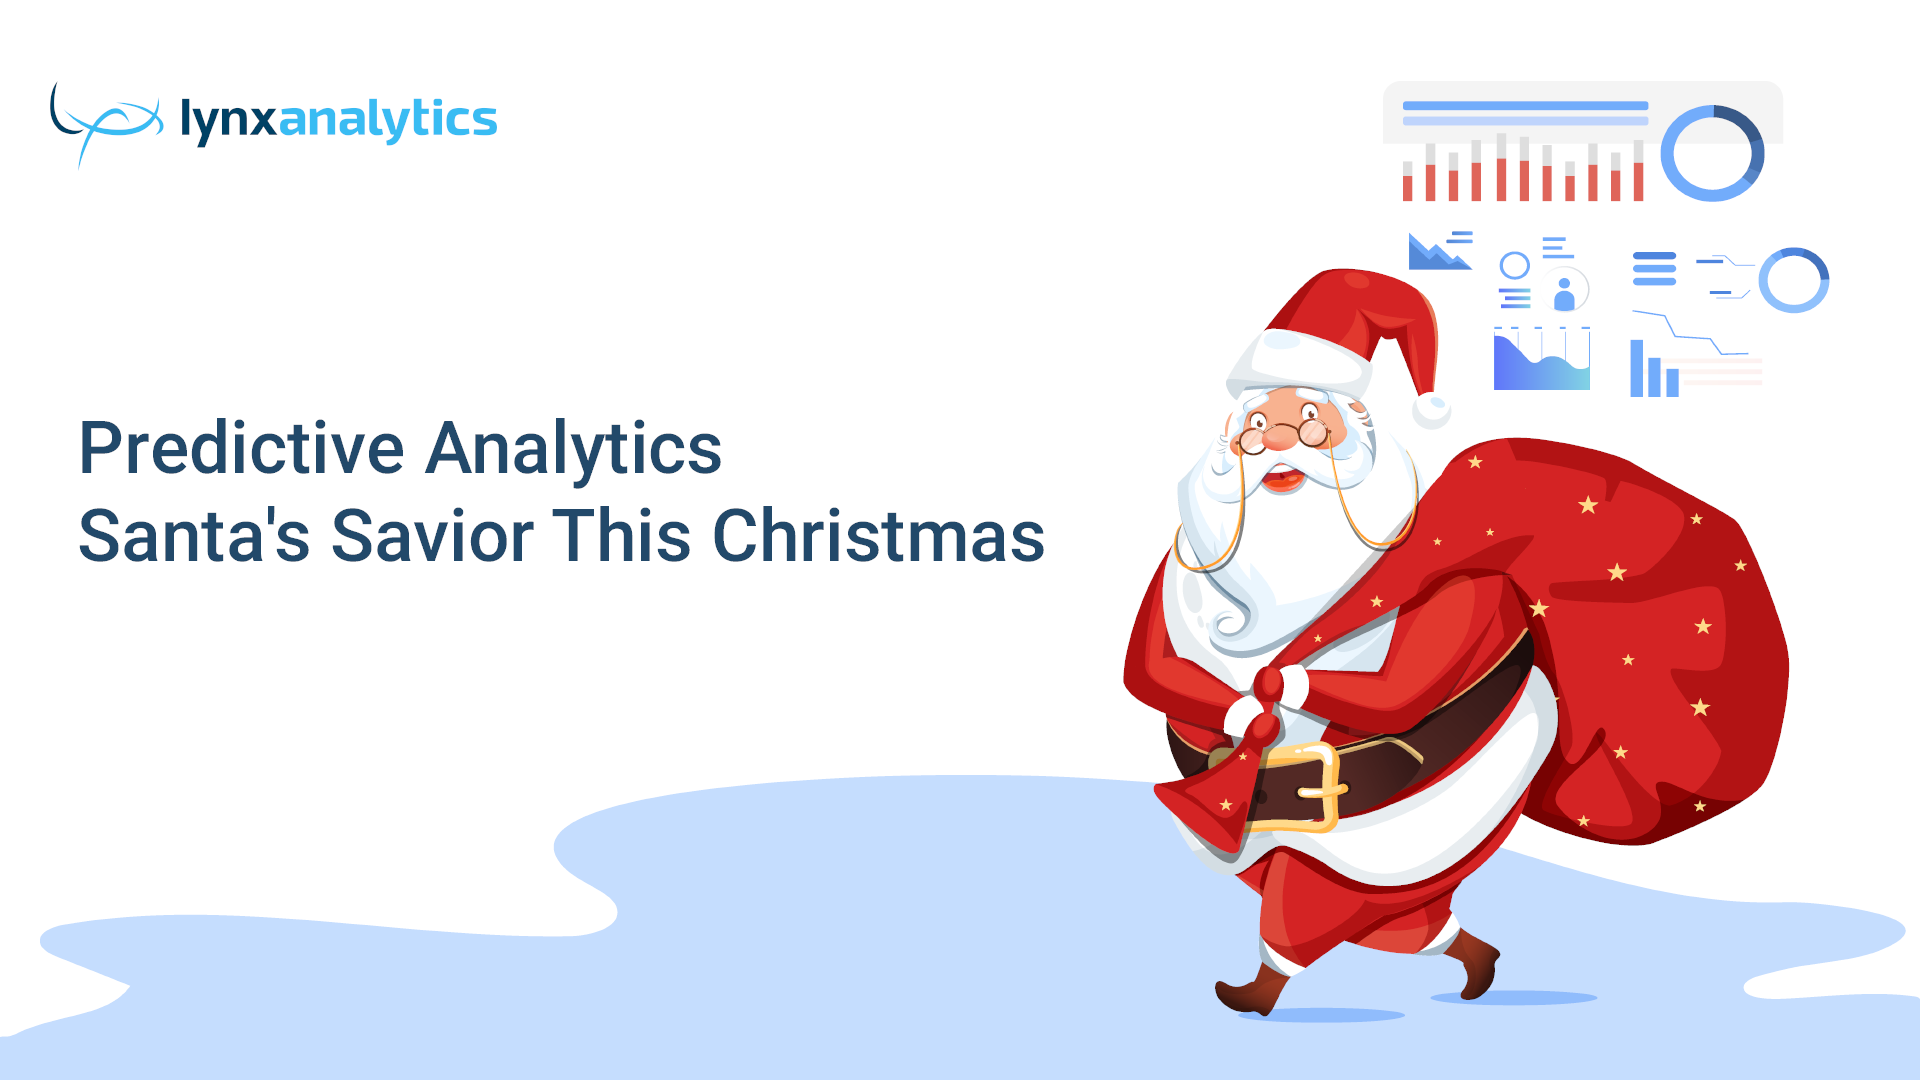 Predictive Analytics - Santa's Savior This Christmas